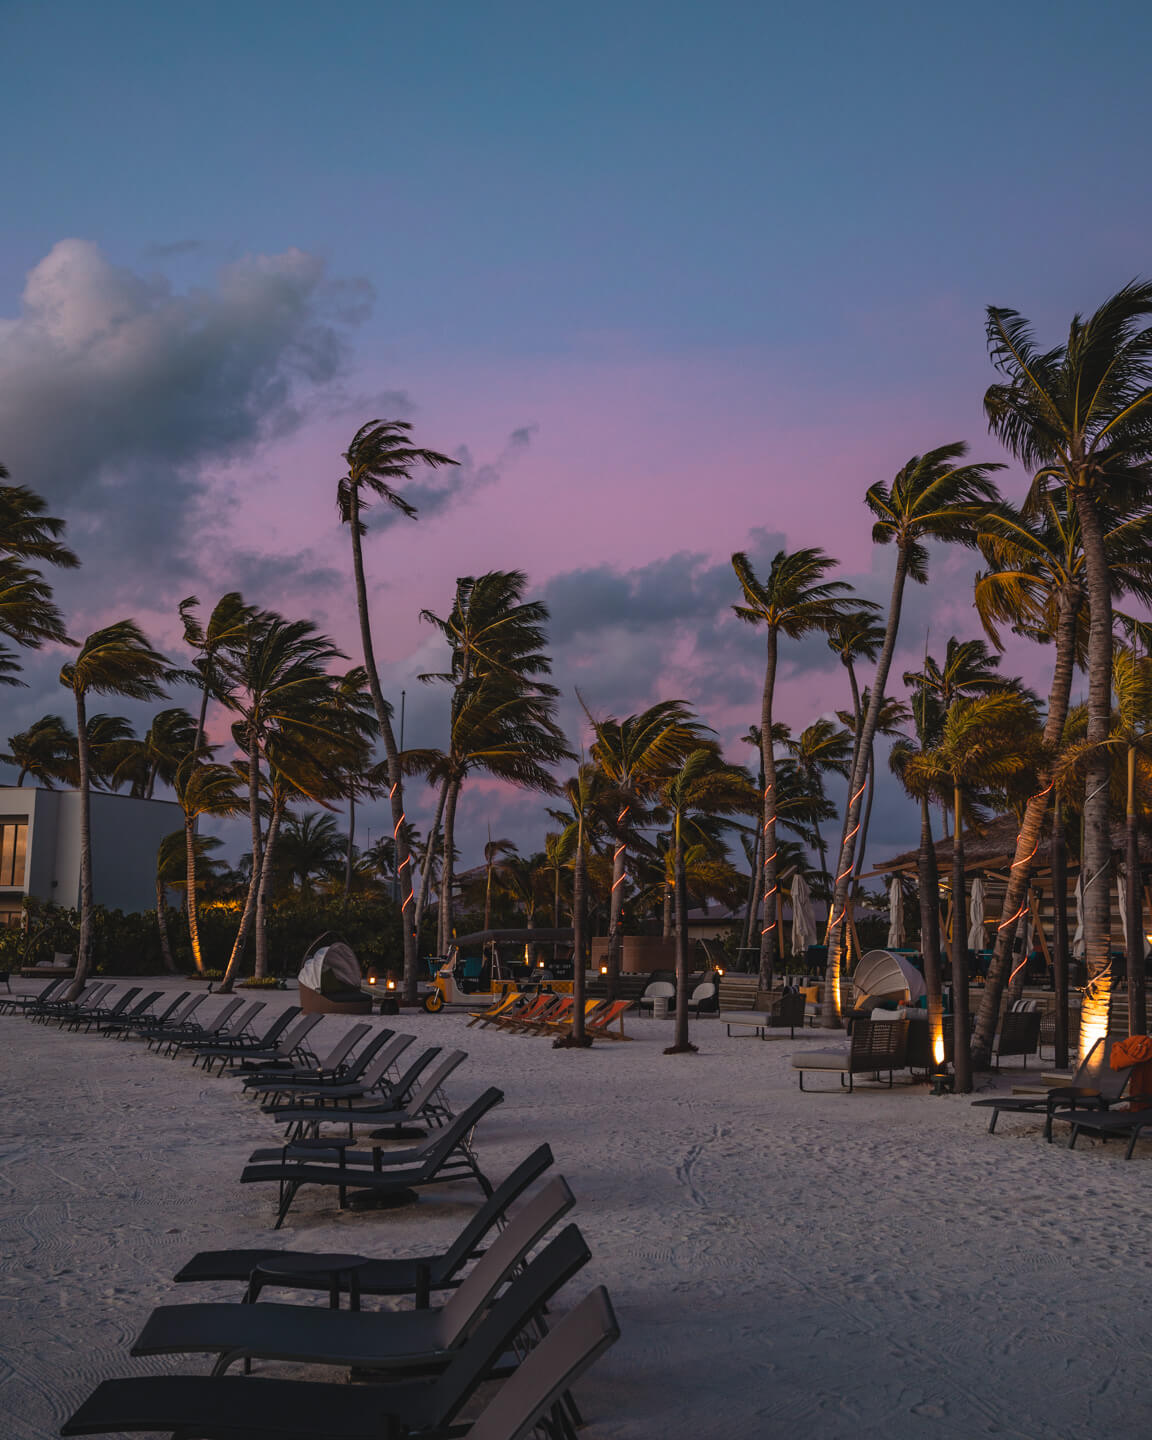 purple sky behind palm trees at the beach in the maldives